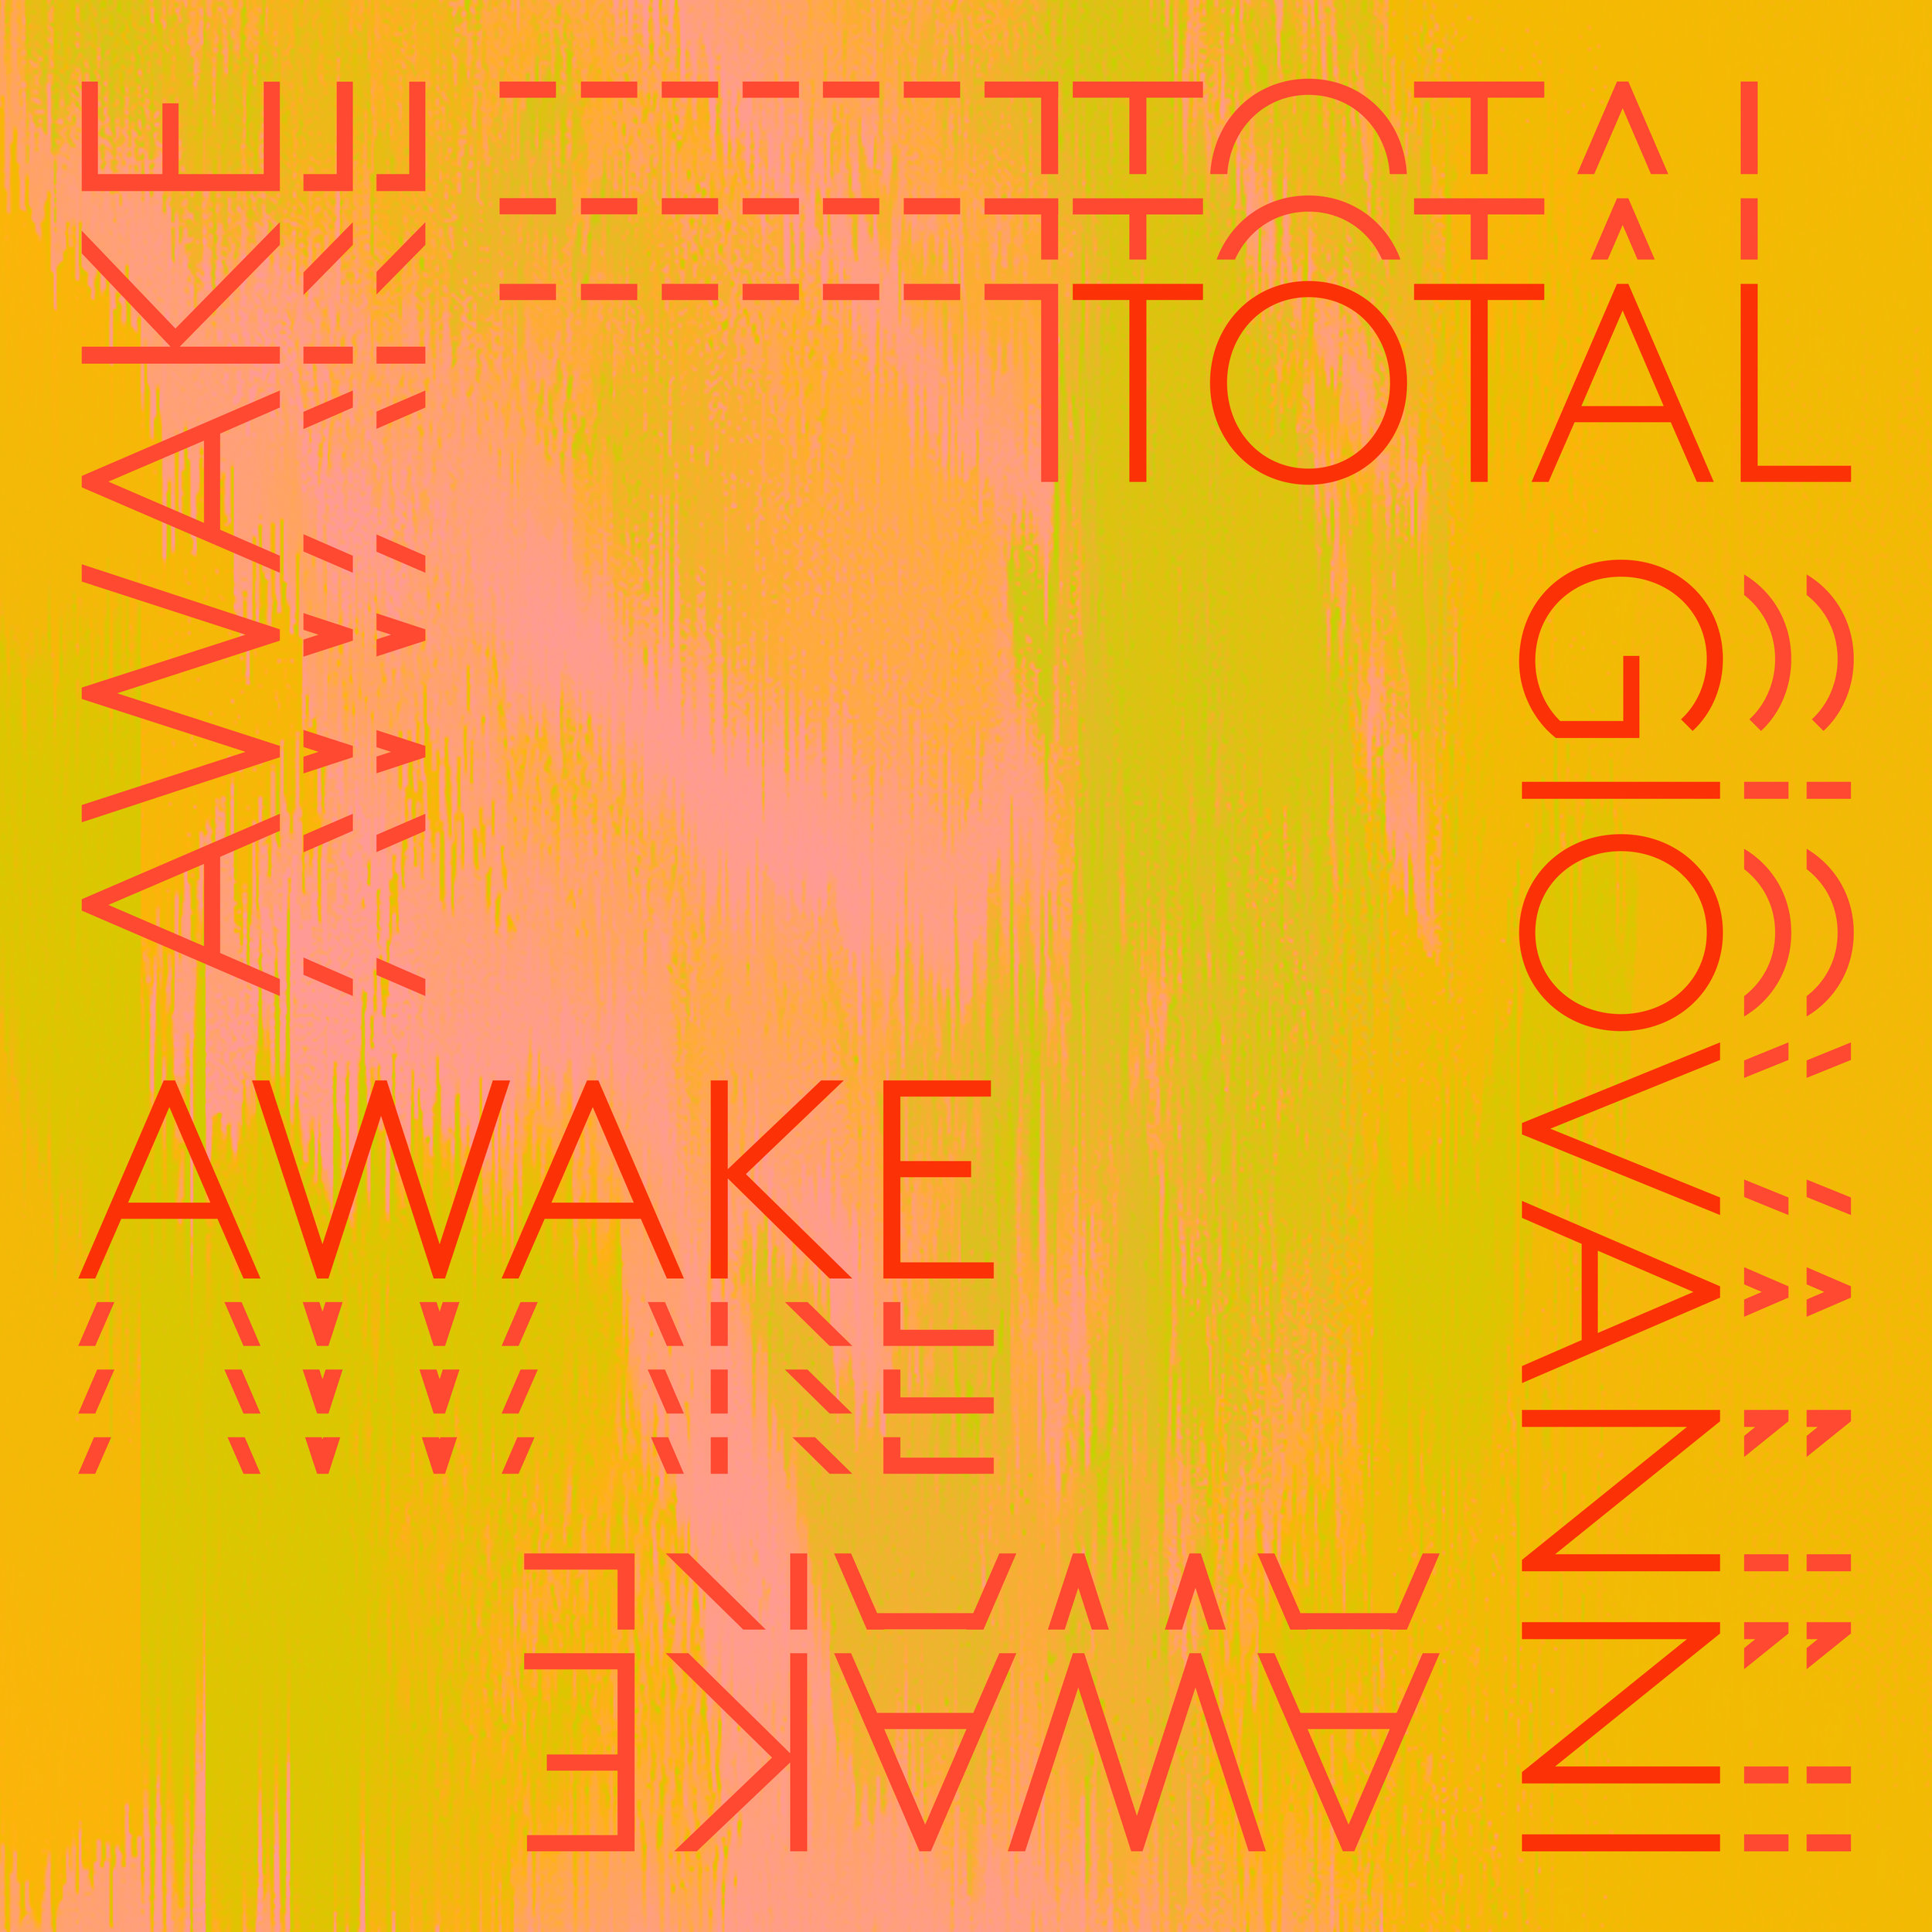 TOTAL GIOVANNI - AWAKE - SingleCO-WROTE/RECORDED/PRODUCED/MIXED